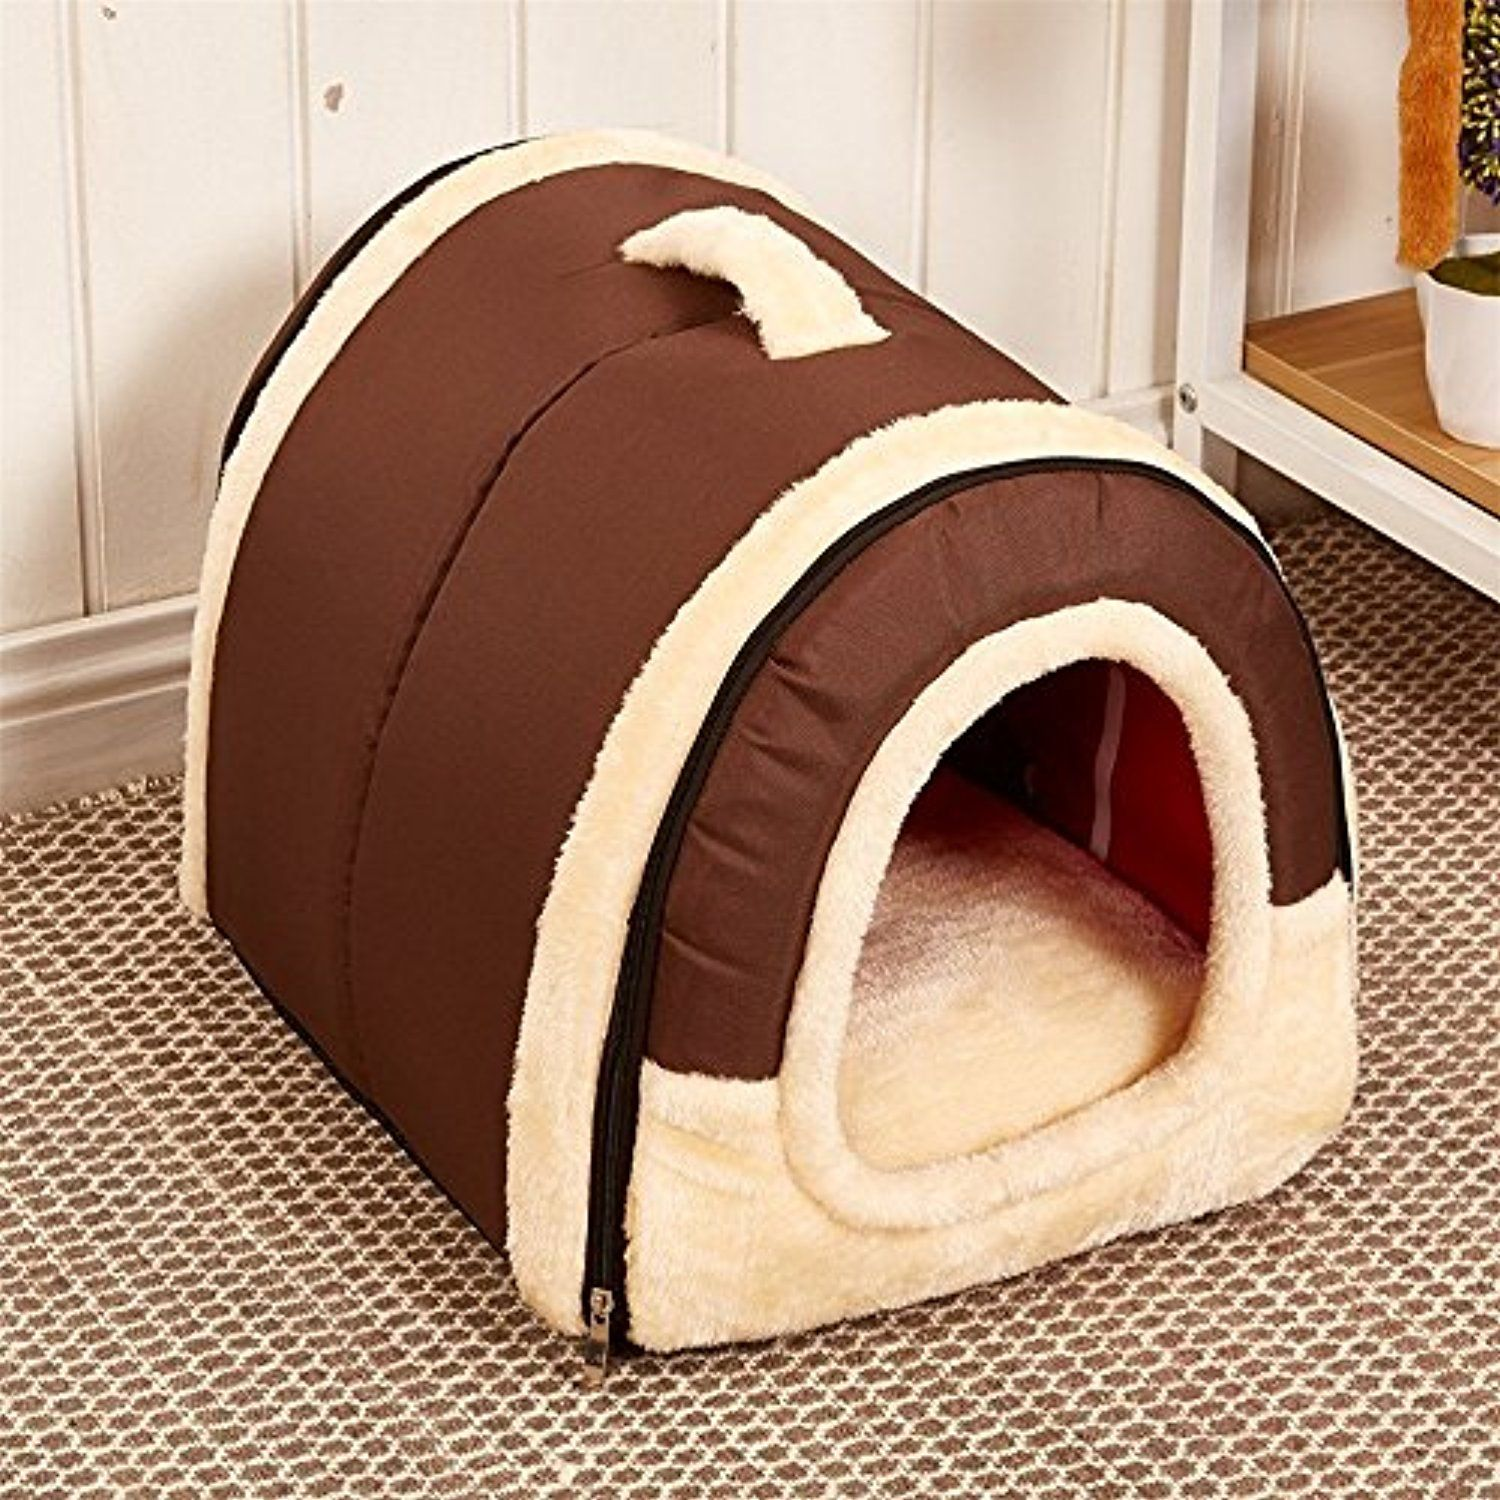 Velimax 2 In 1 Pet House Non Slip Windproof Bottom Cats Pet Tent Pet Cover 2 In 3 Pet House Handbag Shape For Dogs Dog Dog Pet Beds Puppy Beds Dog House Bed